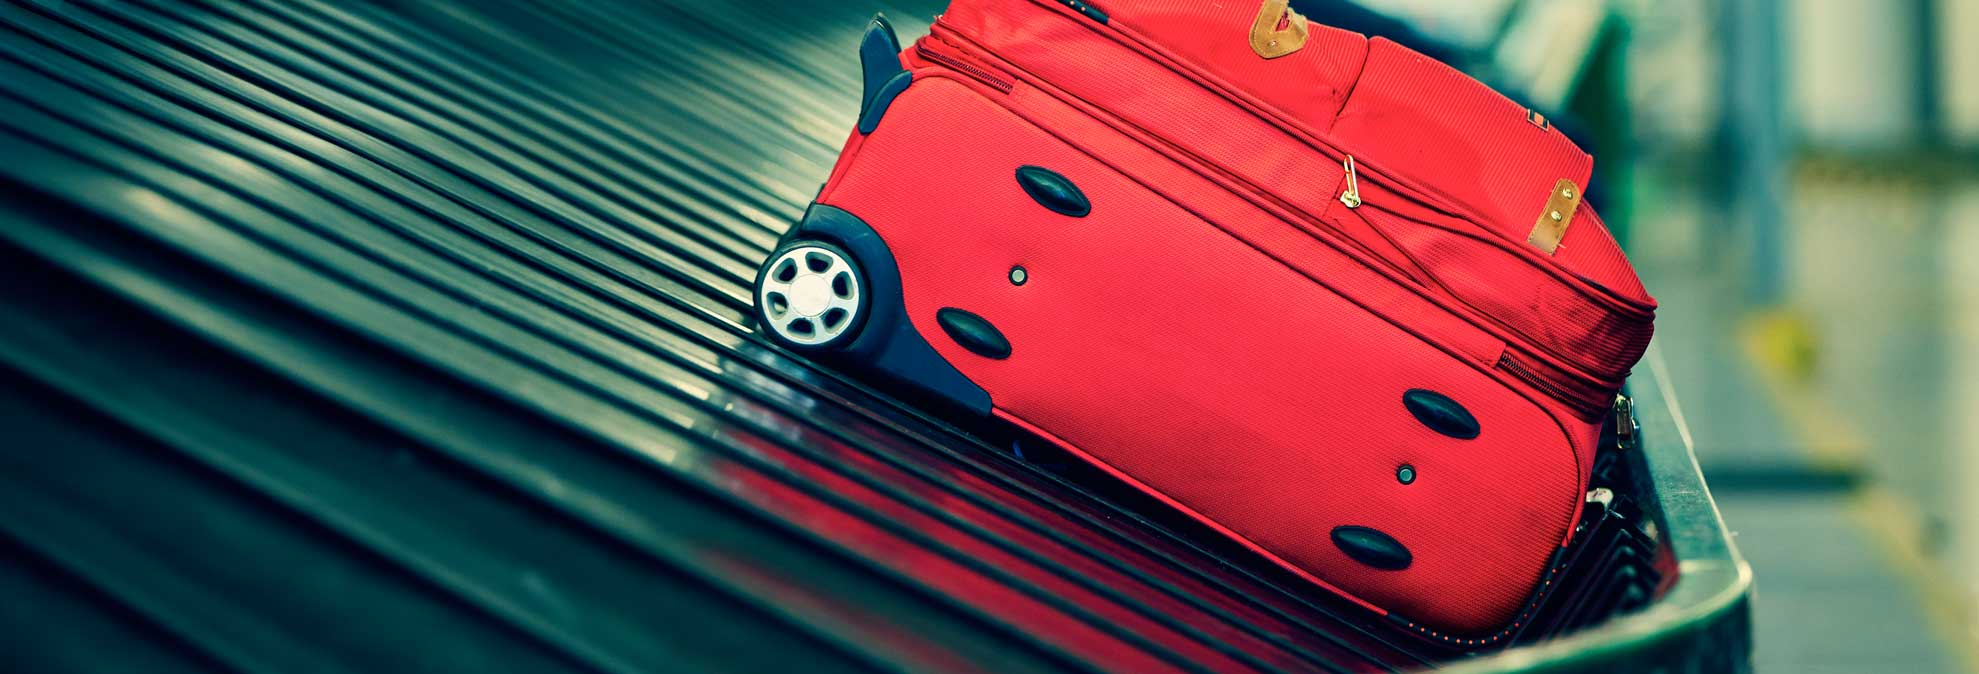 Why Durable Luggage Makes The Best Luggage Consumer Reports